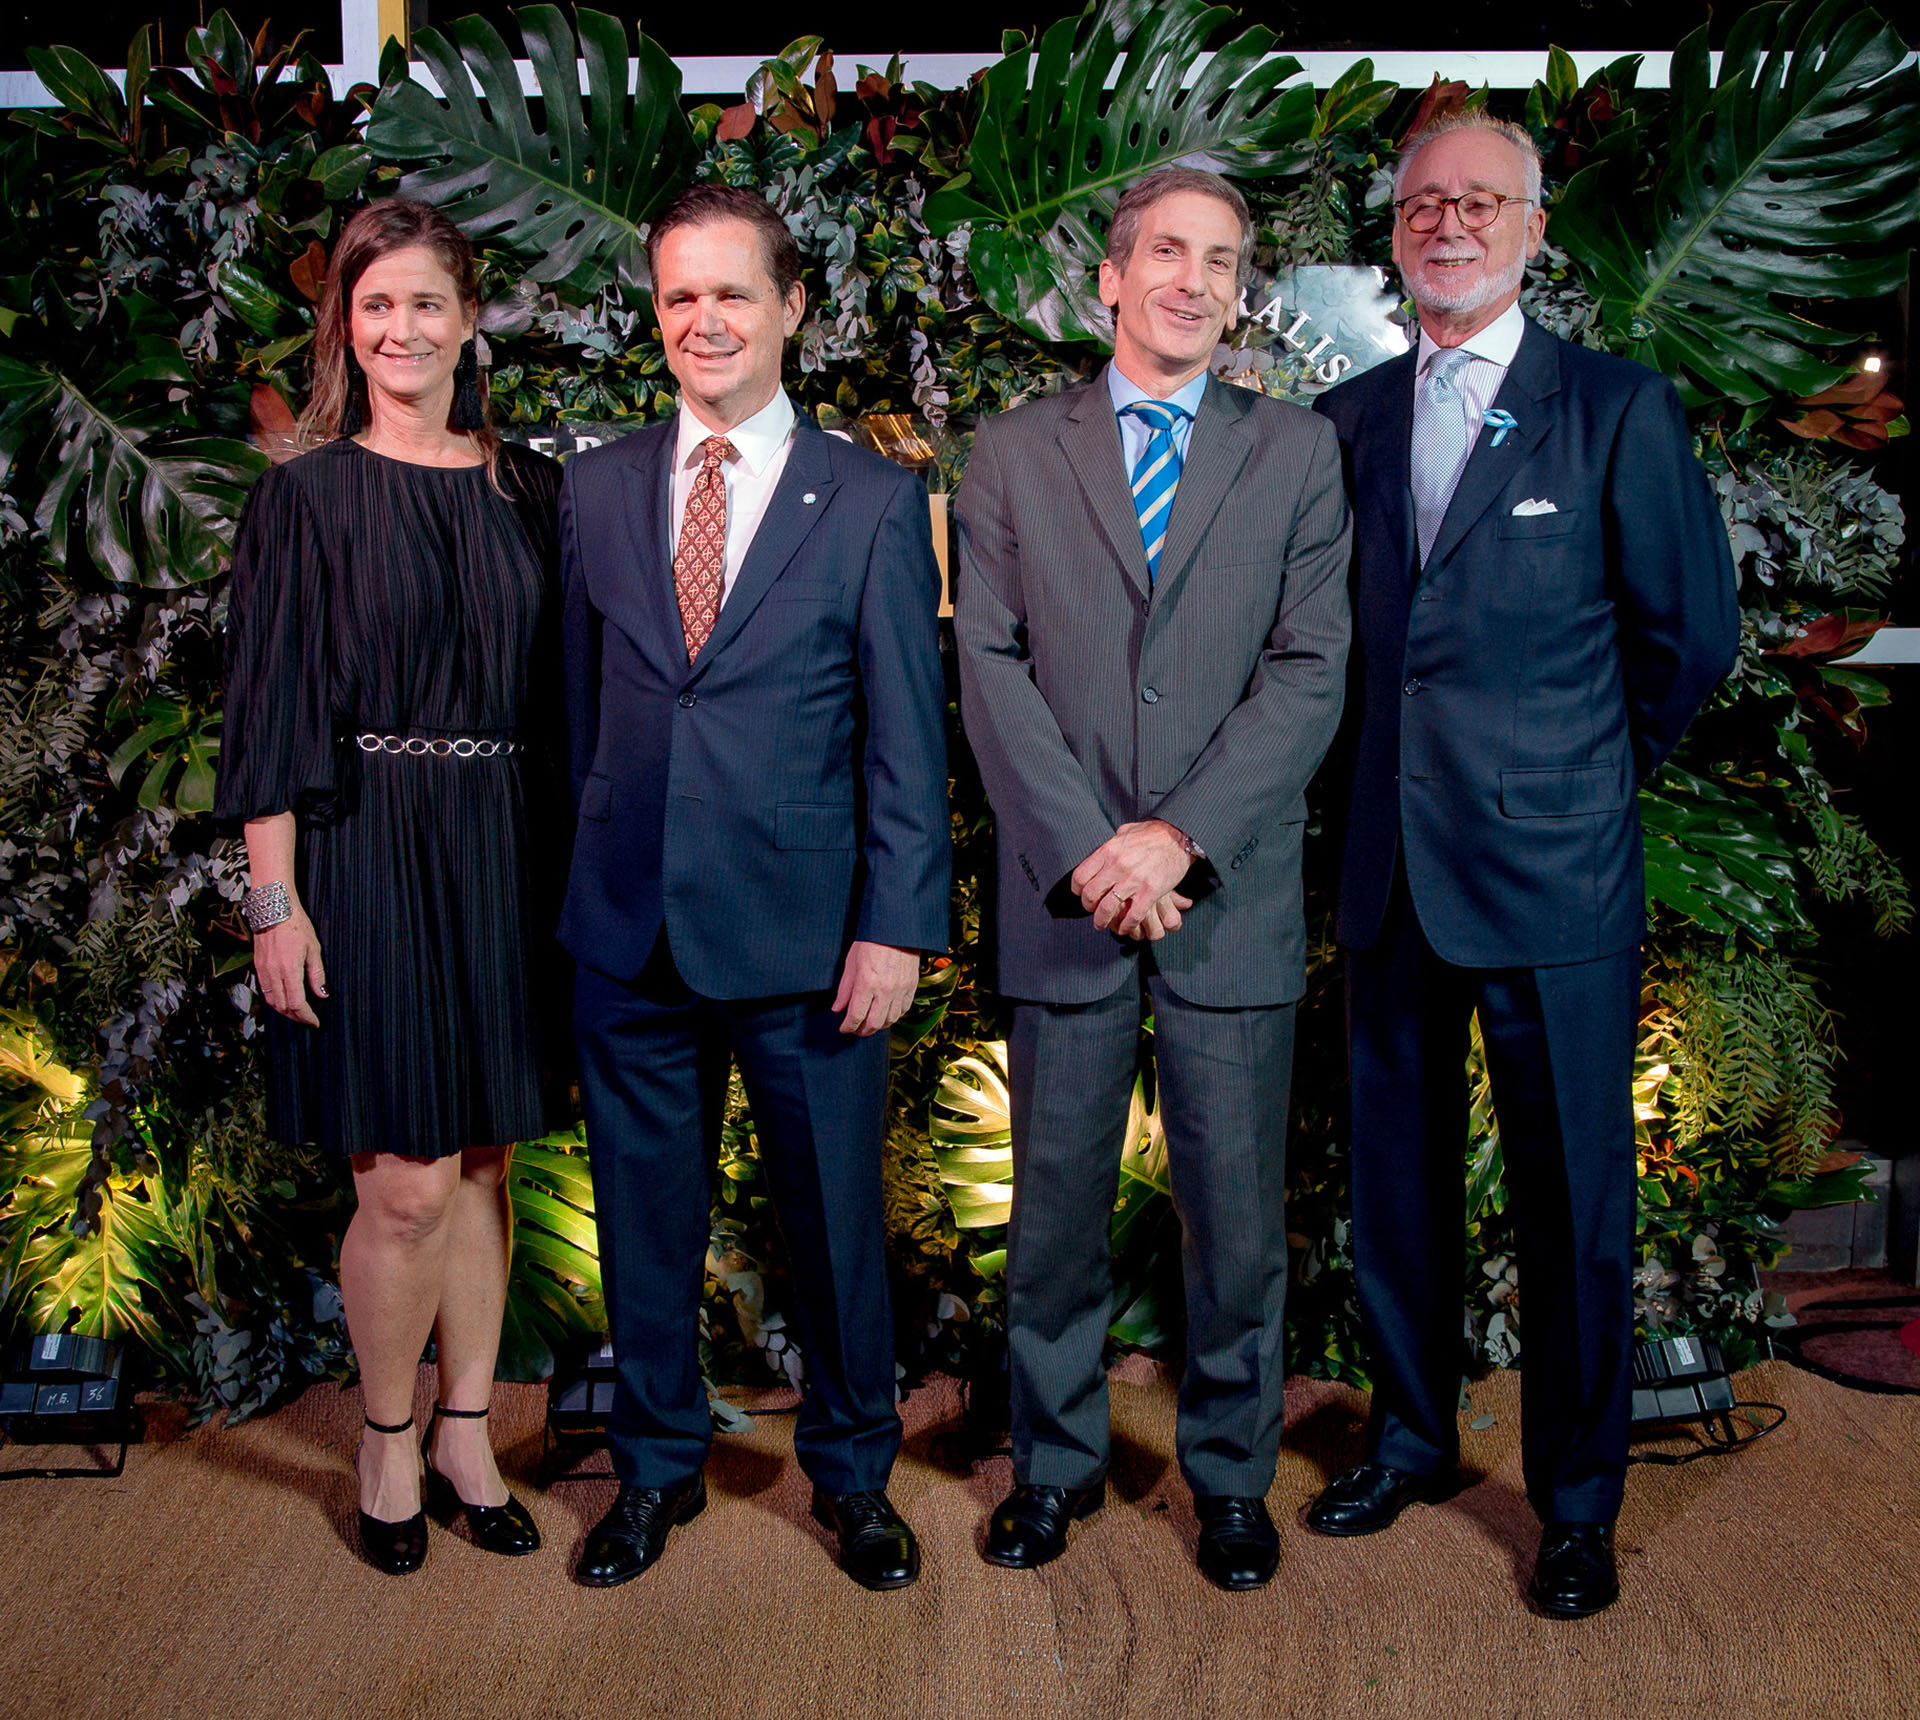 Laura Blaquier junto a Pablo Plá, presidente de Ingredion, Julián Rodríguez y Guillermo Hang, director general de Techint